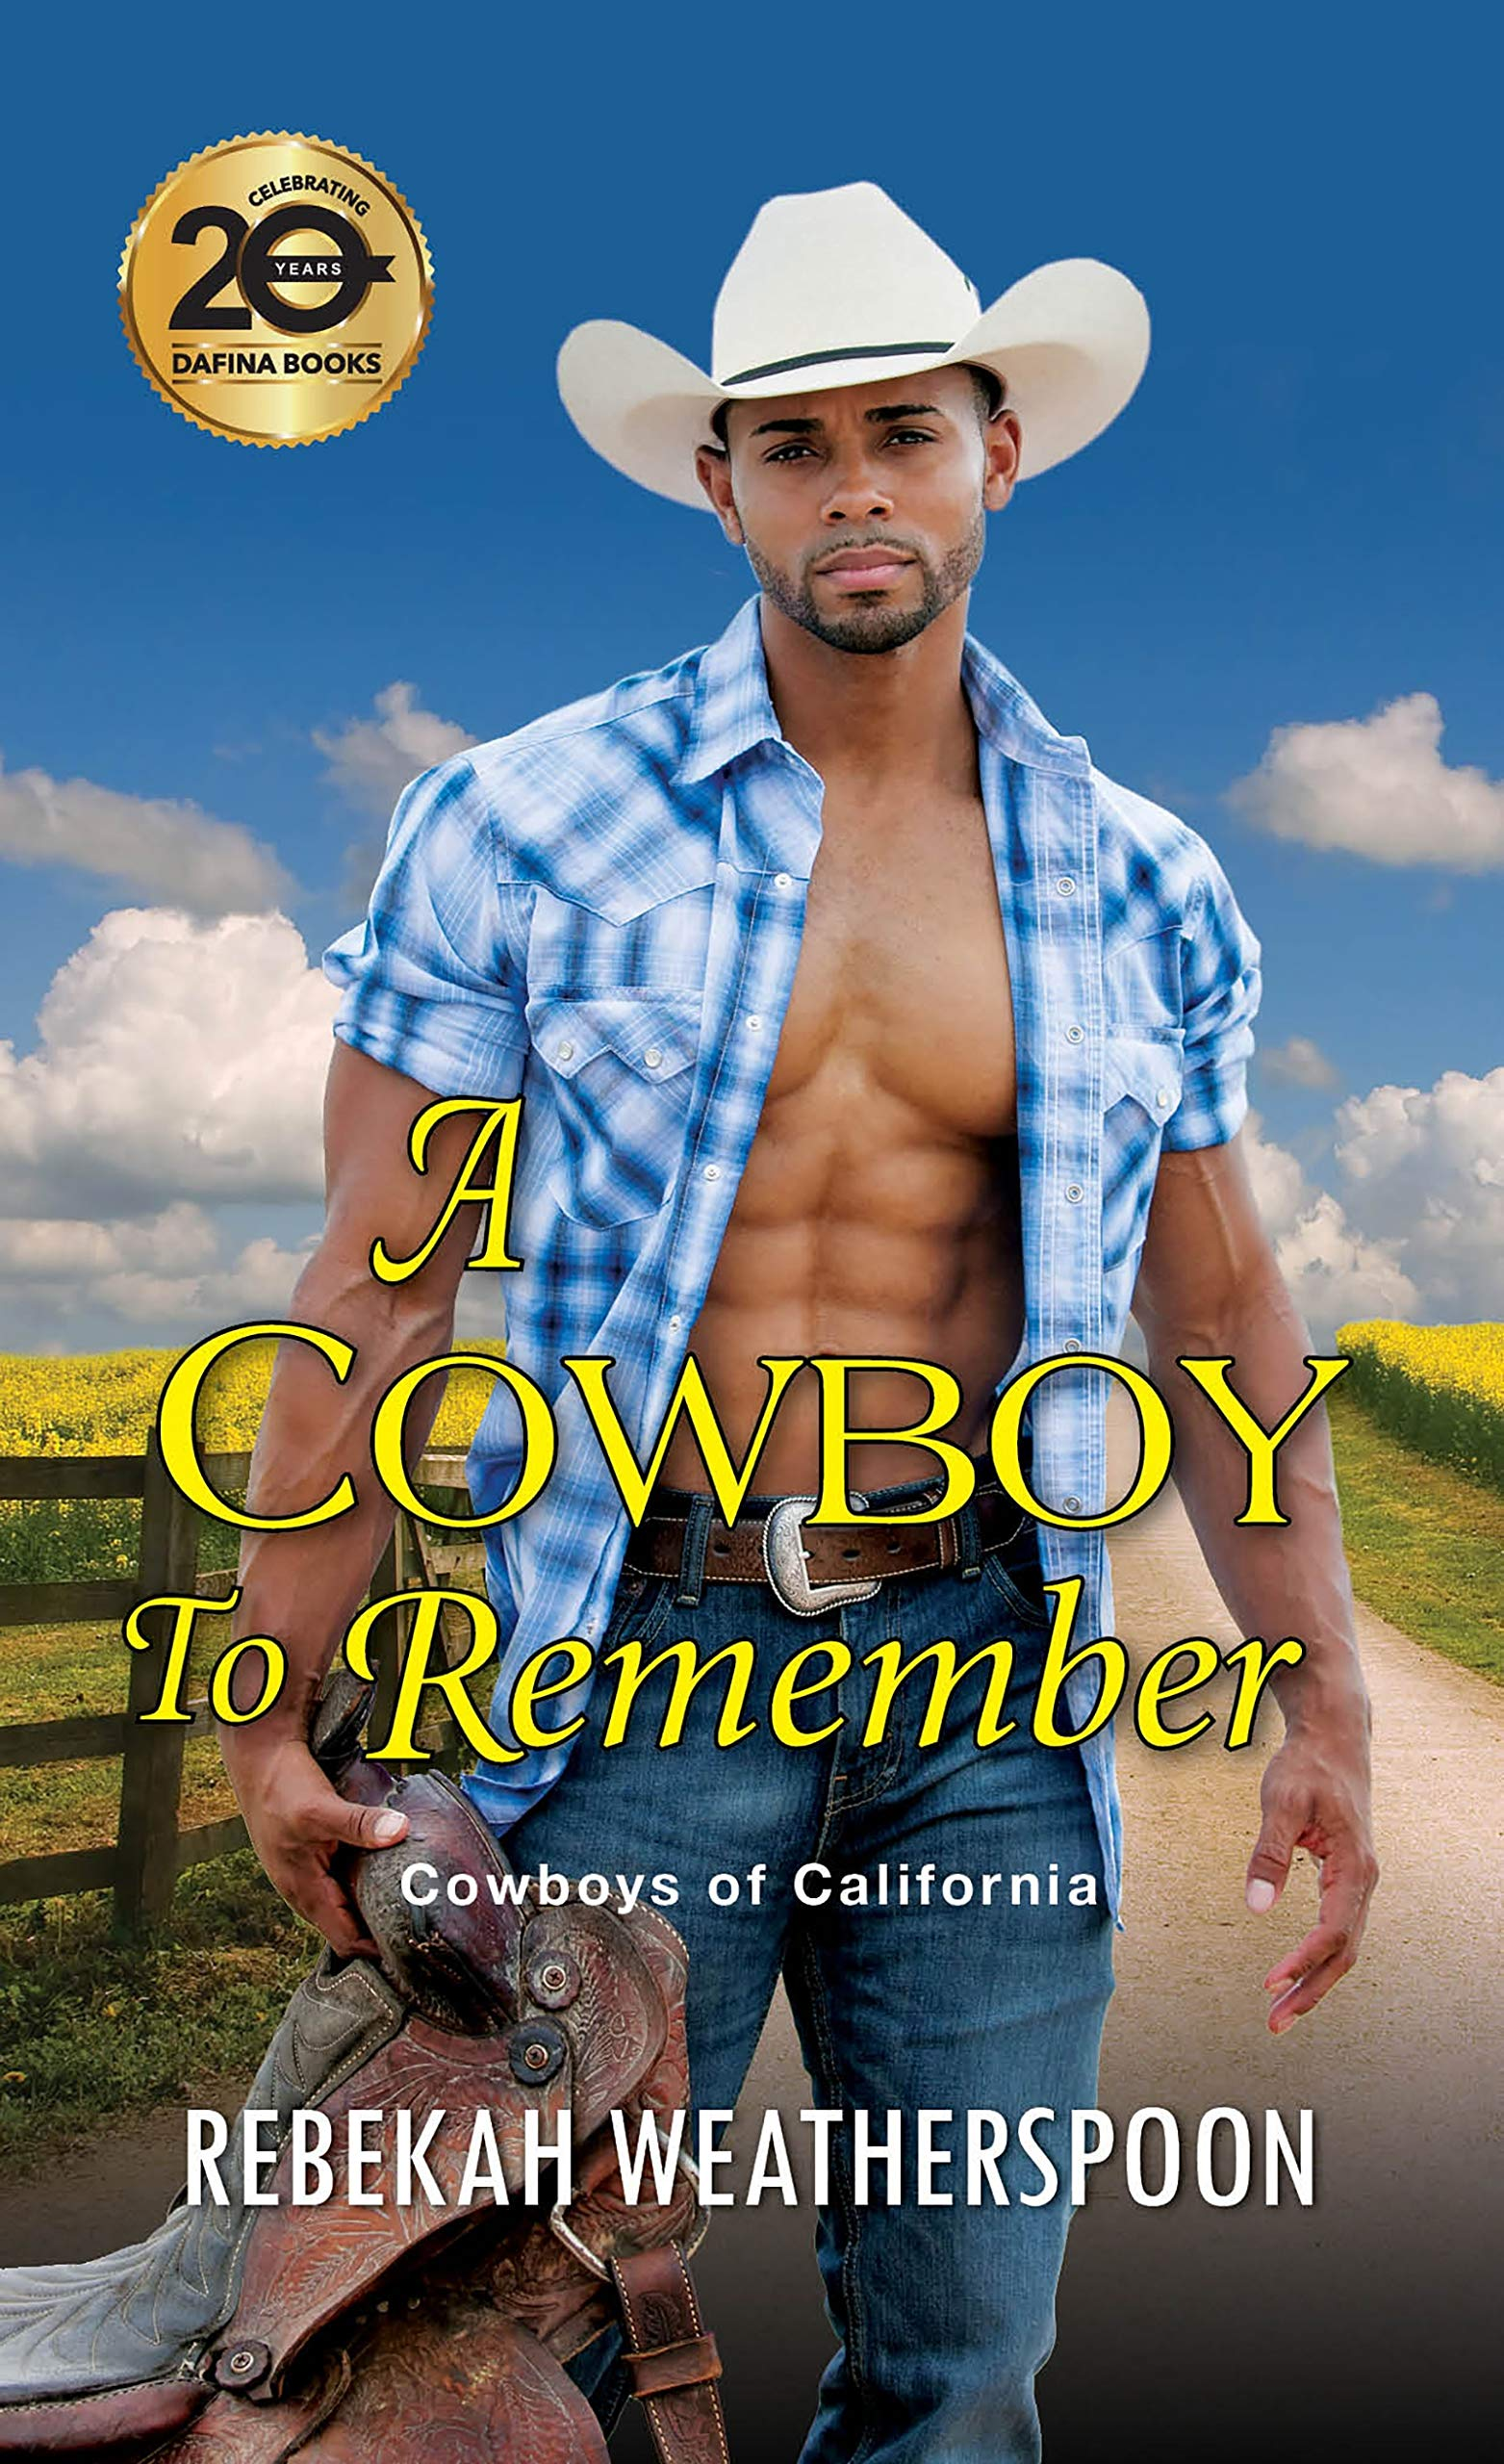 A Cowboy to Remember by Rebekah Weatherspoon